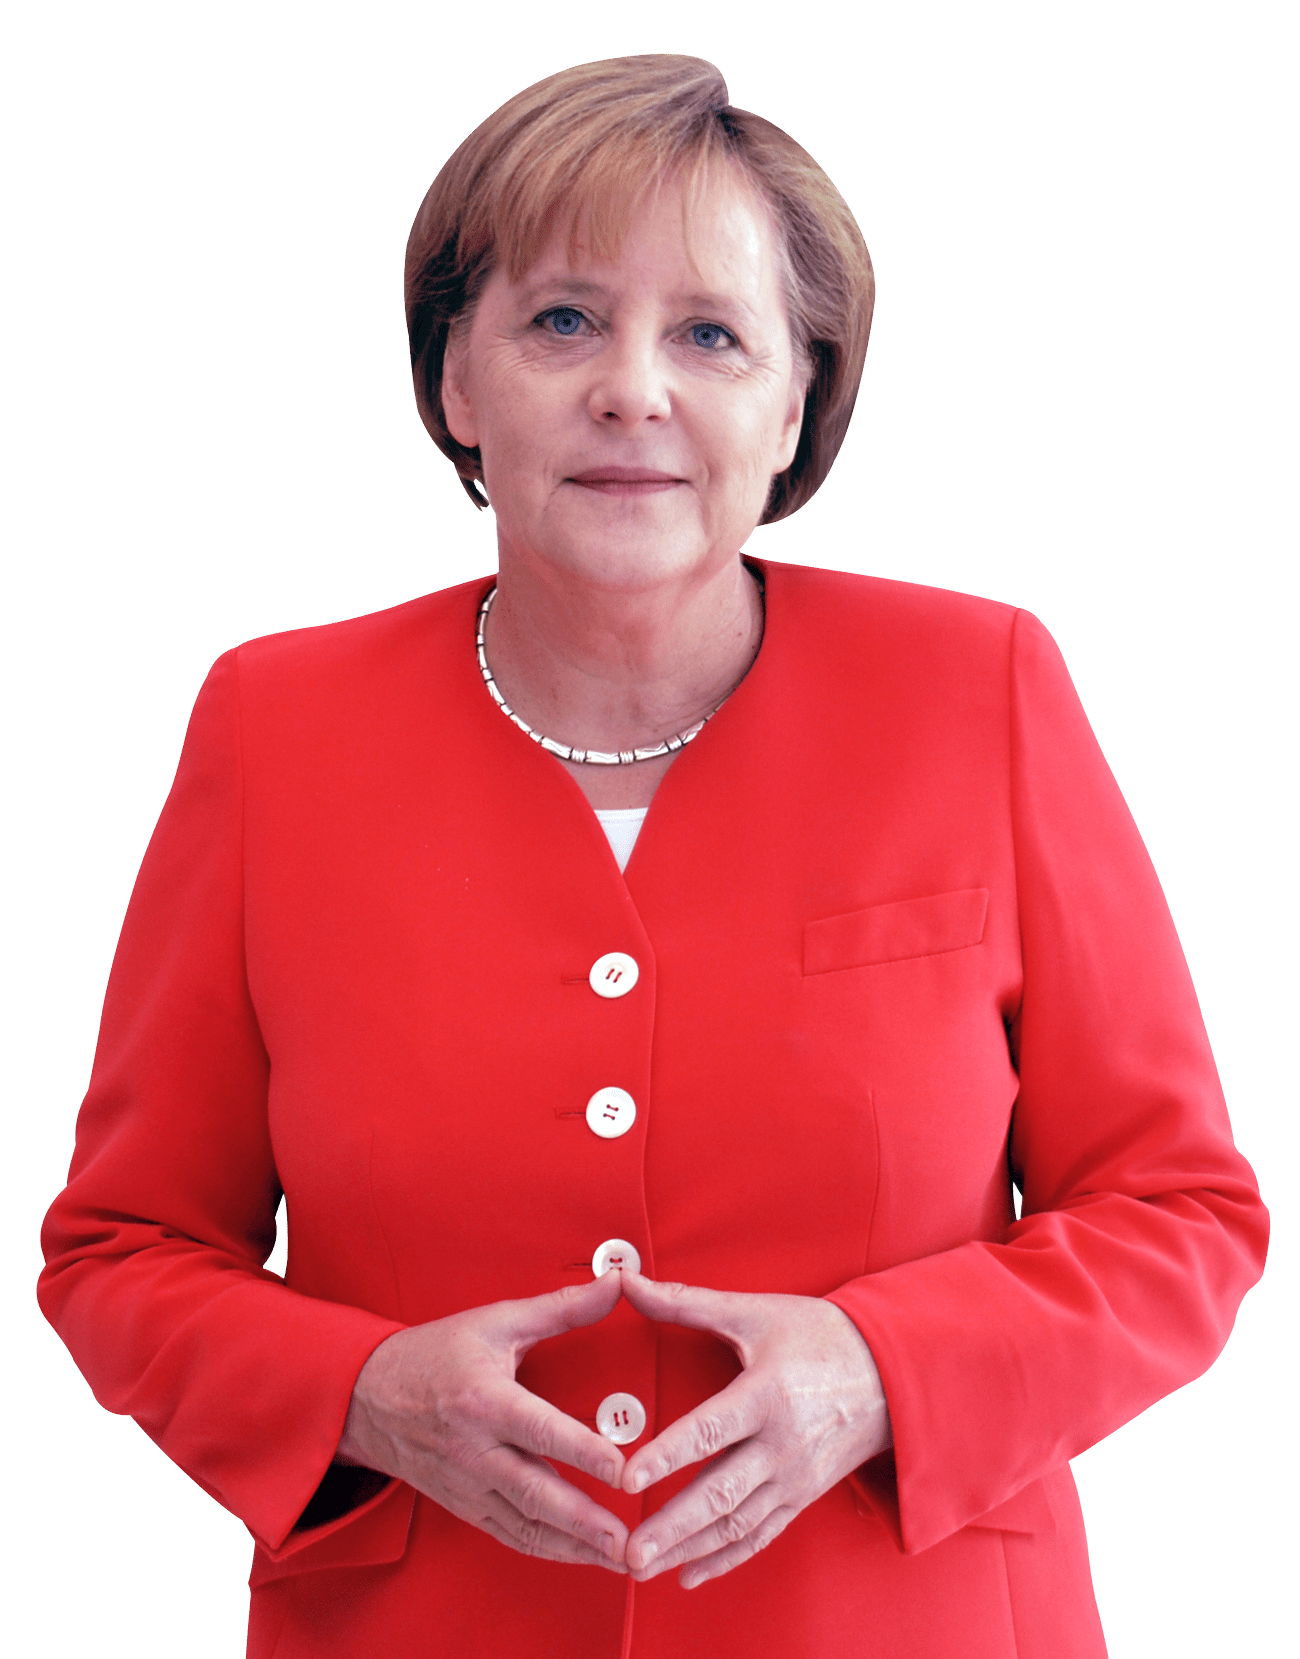 Angela Merkel Smiling transparent PNG.